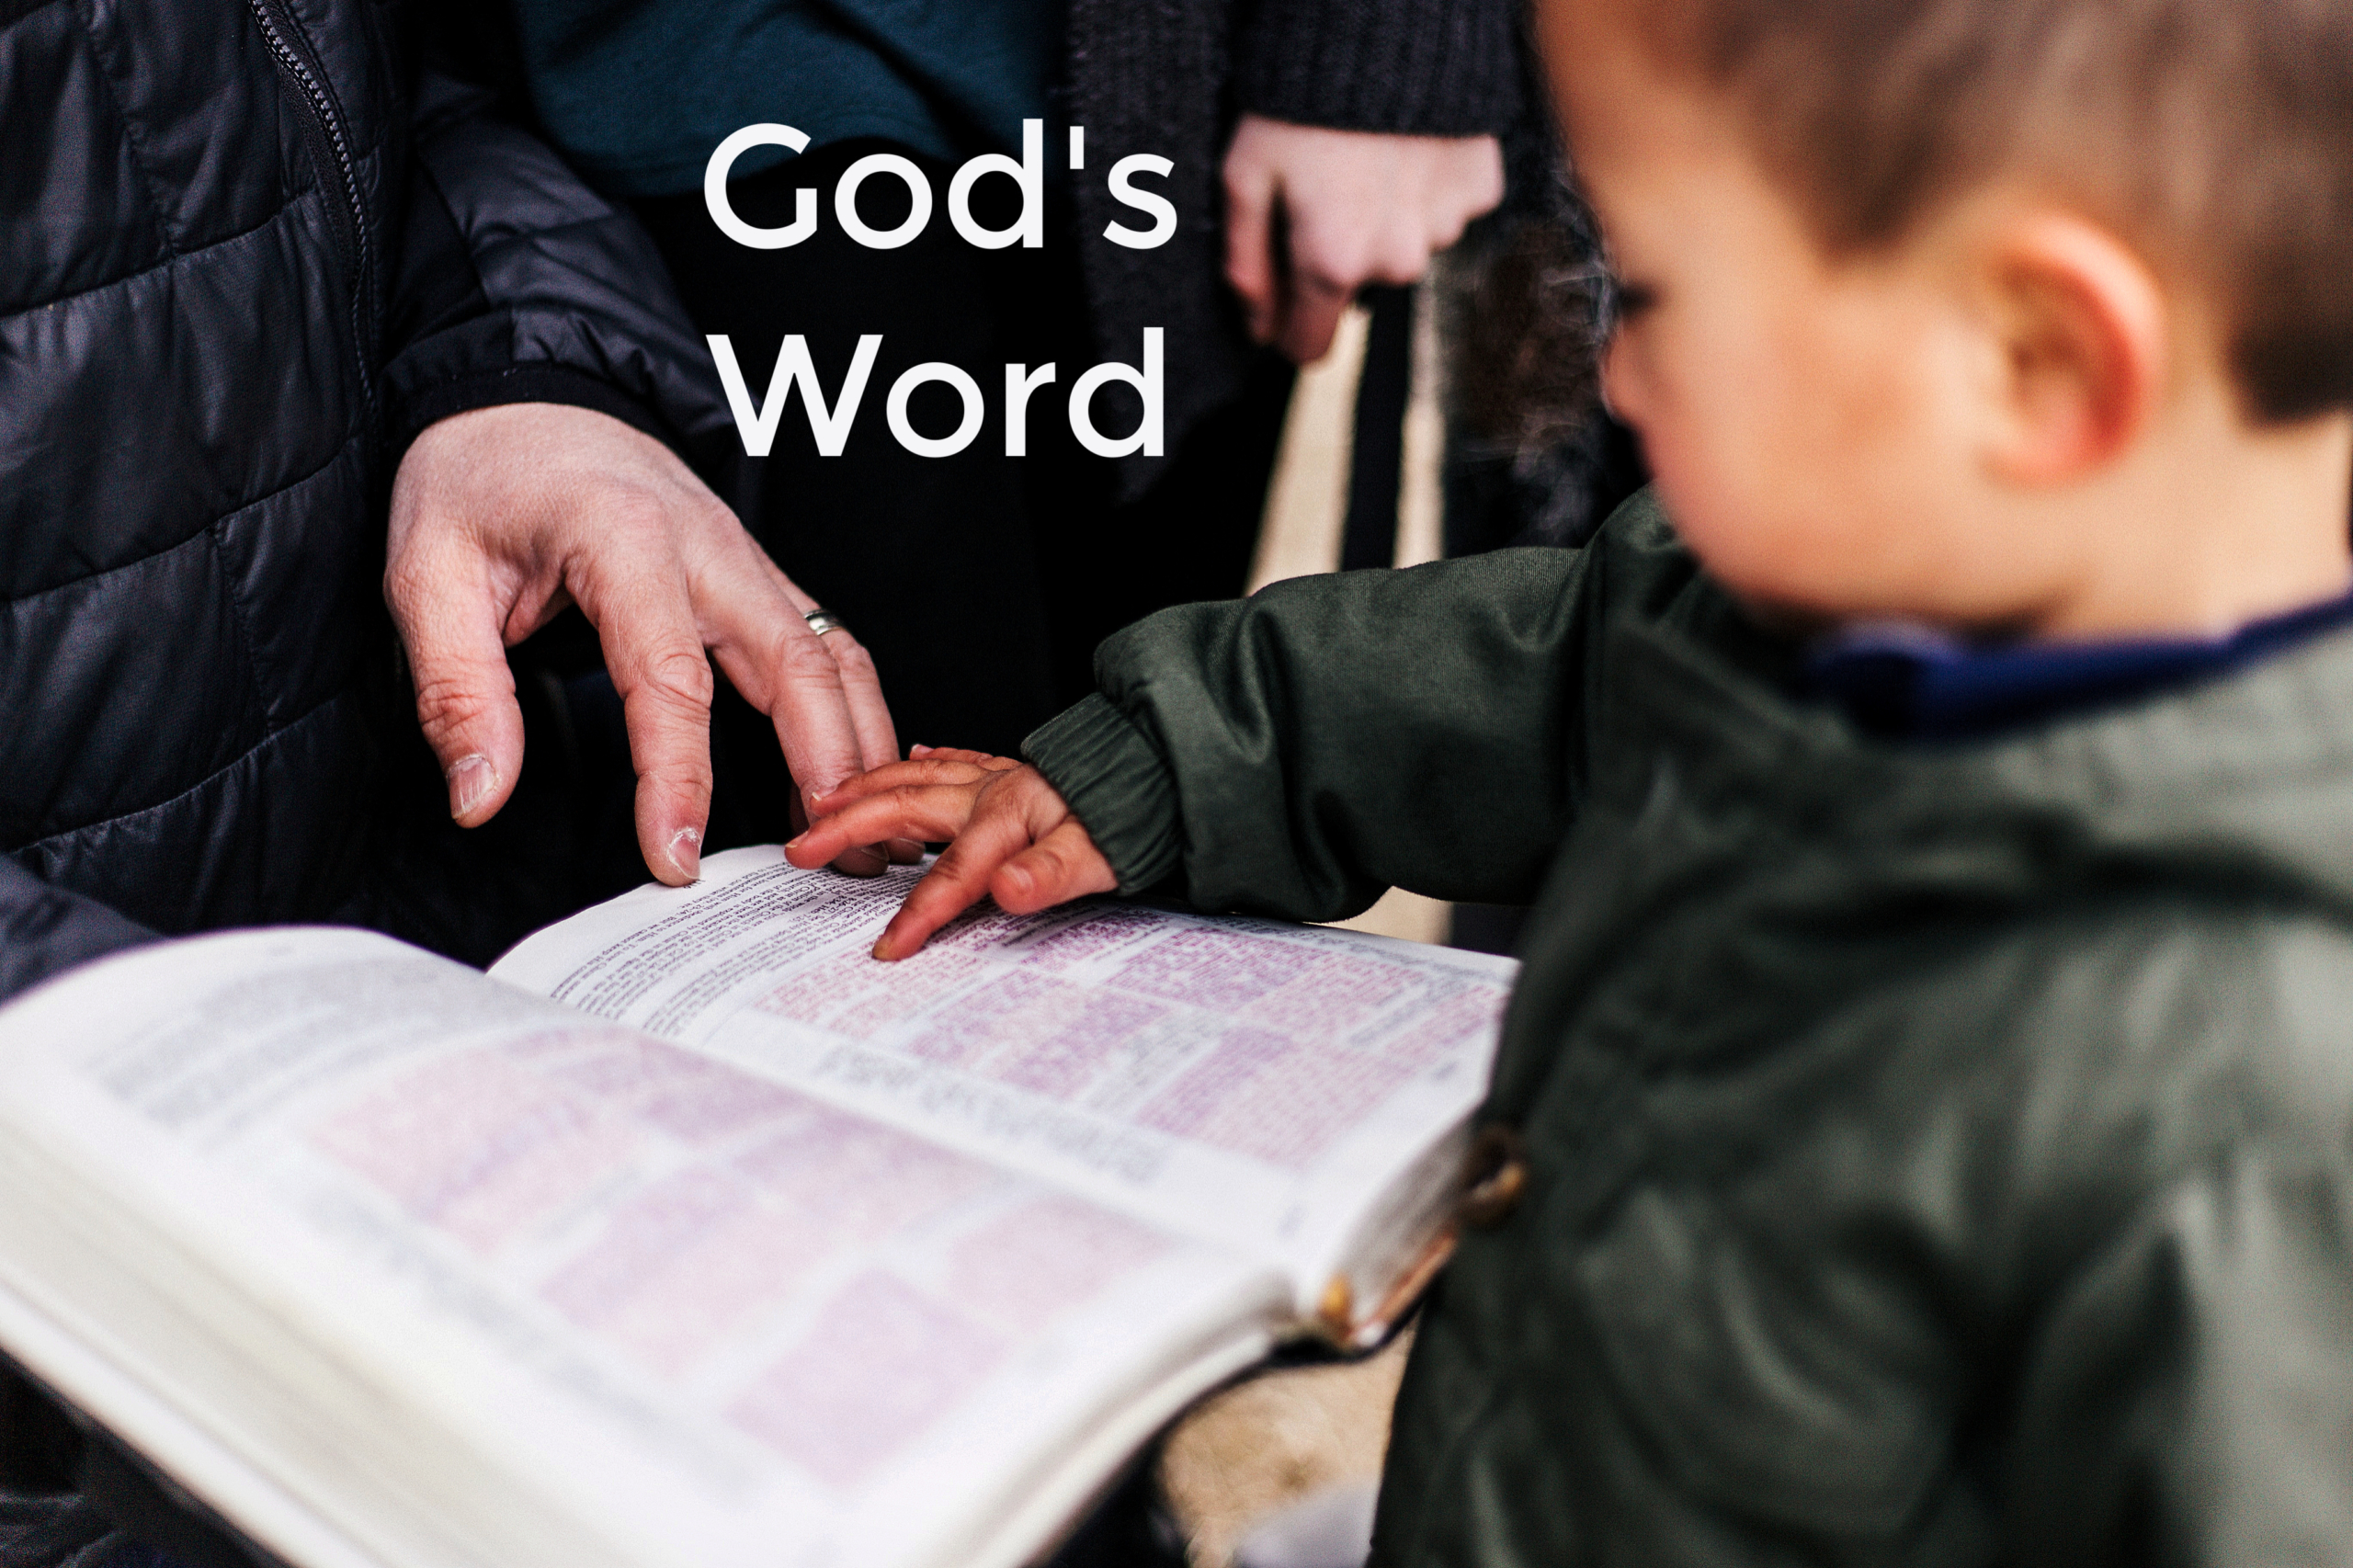 God's Word, little boy touching Bible held by older man